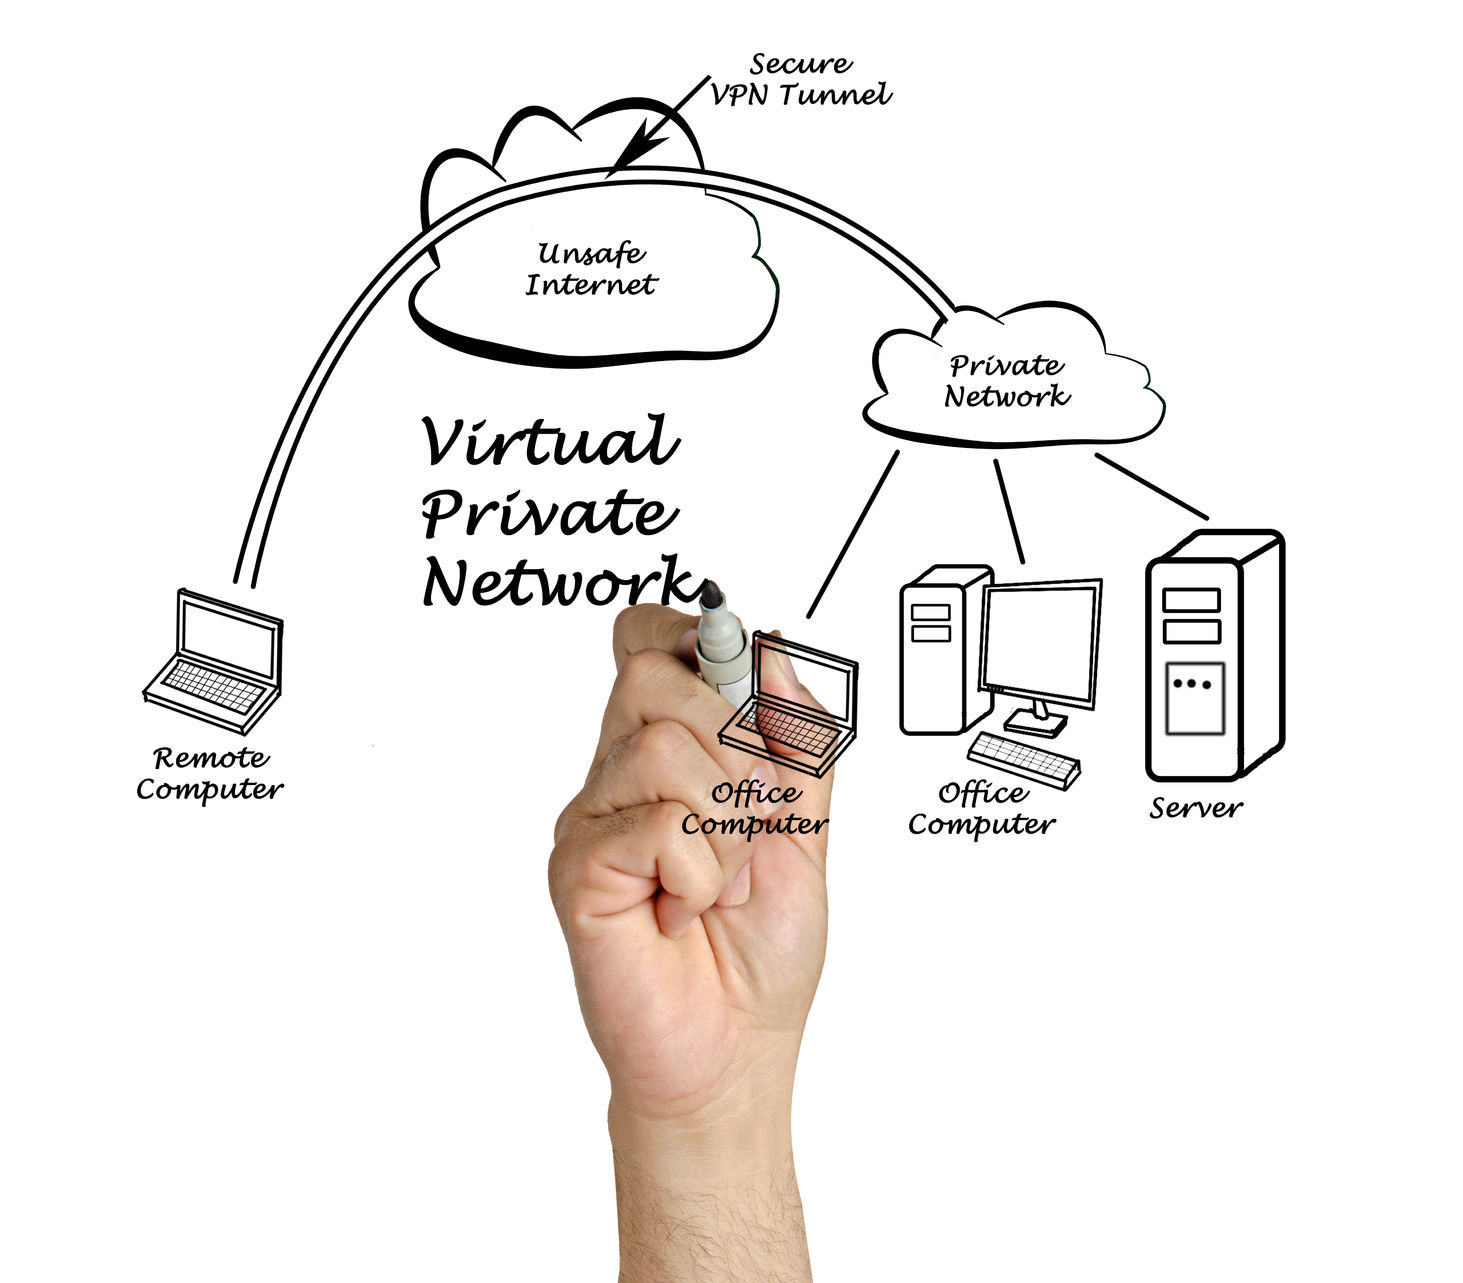 Virtual Private Network Explained